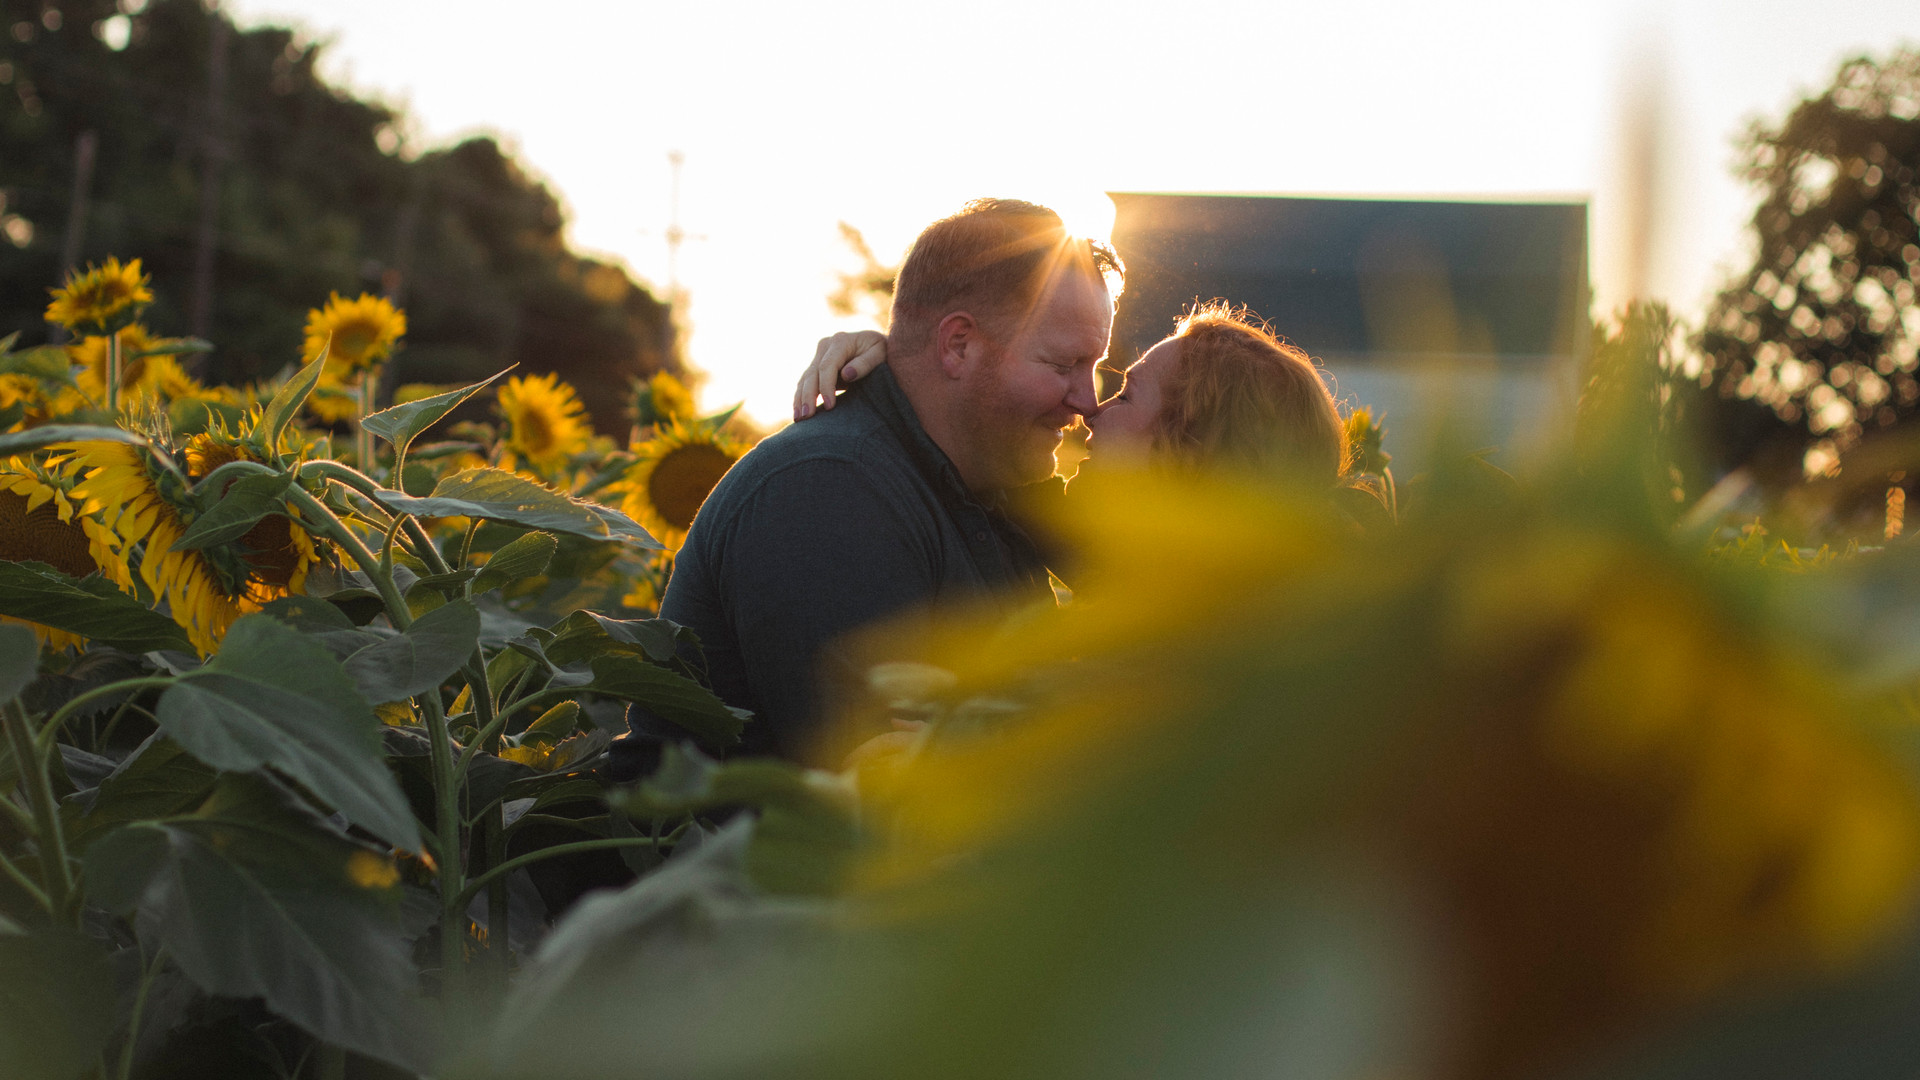 Jennifer Schaefer Photography-Harford County-Maryland-Photographer-Sunflowers-Maternity